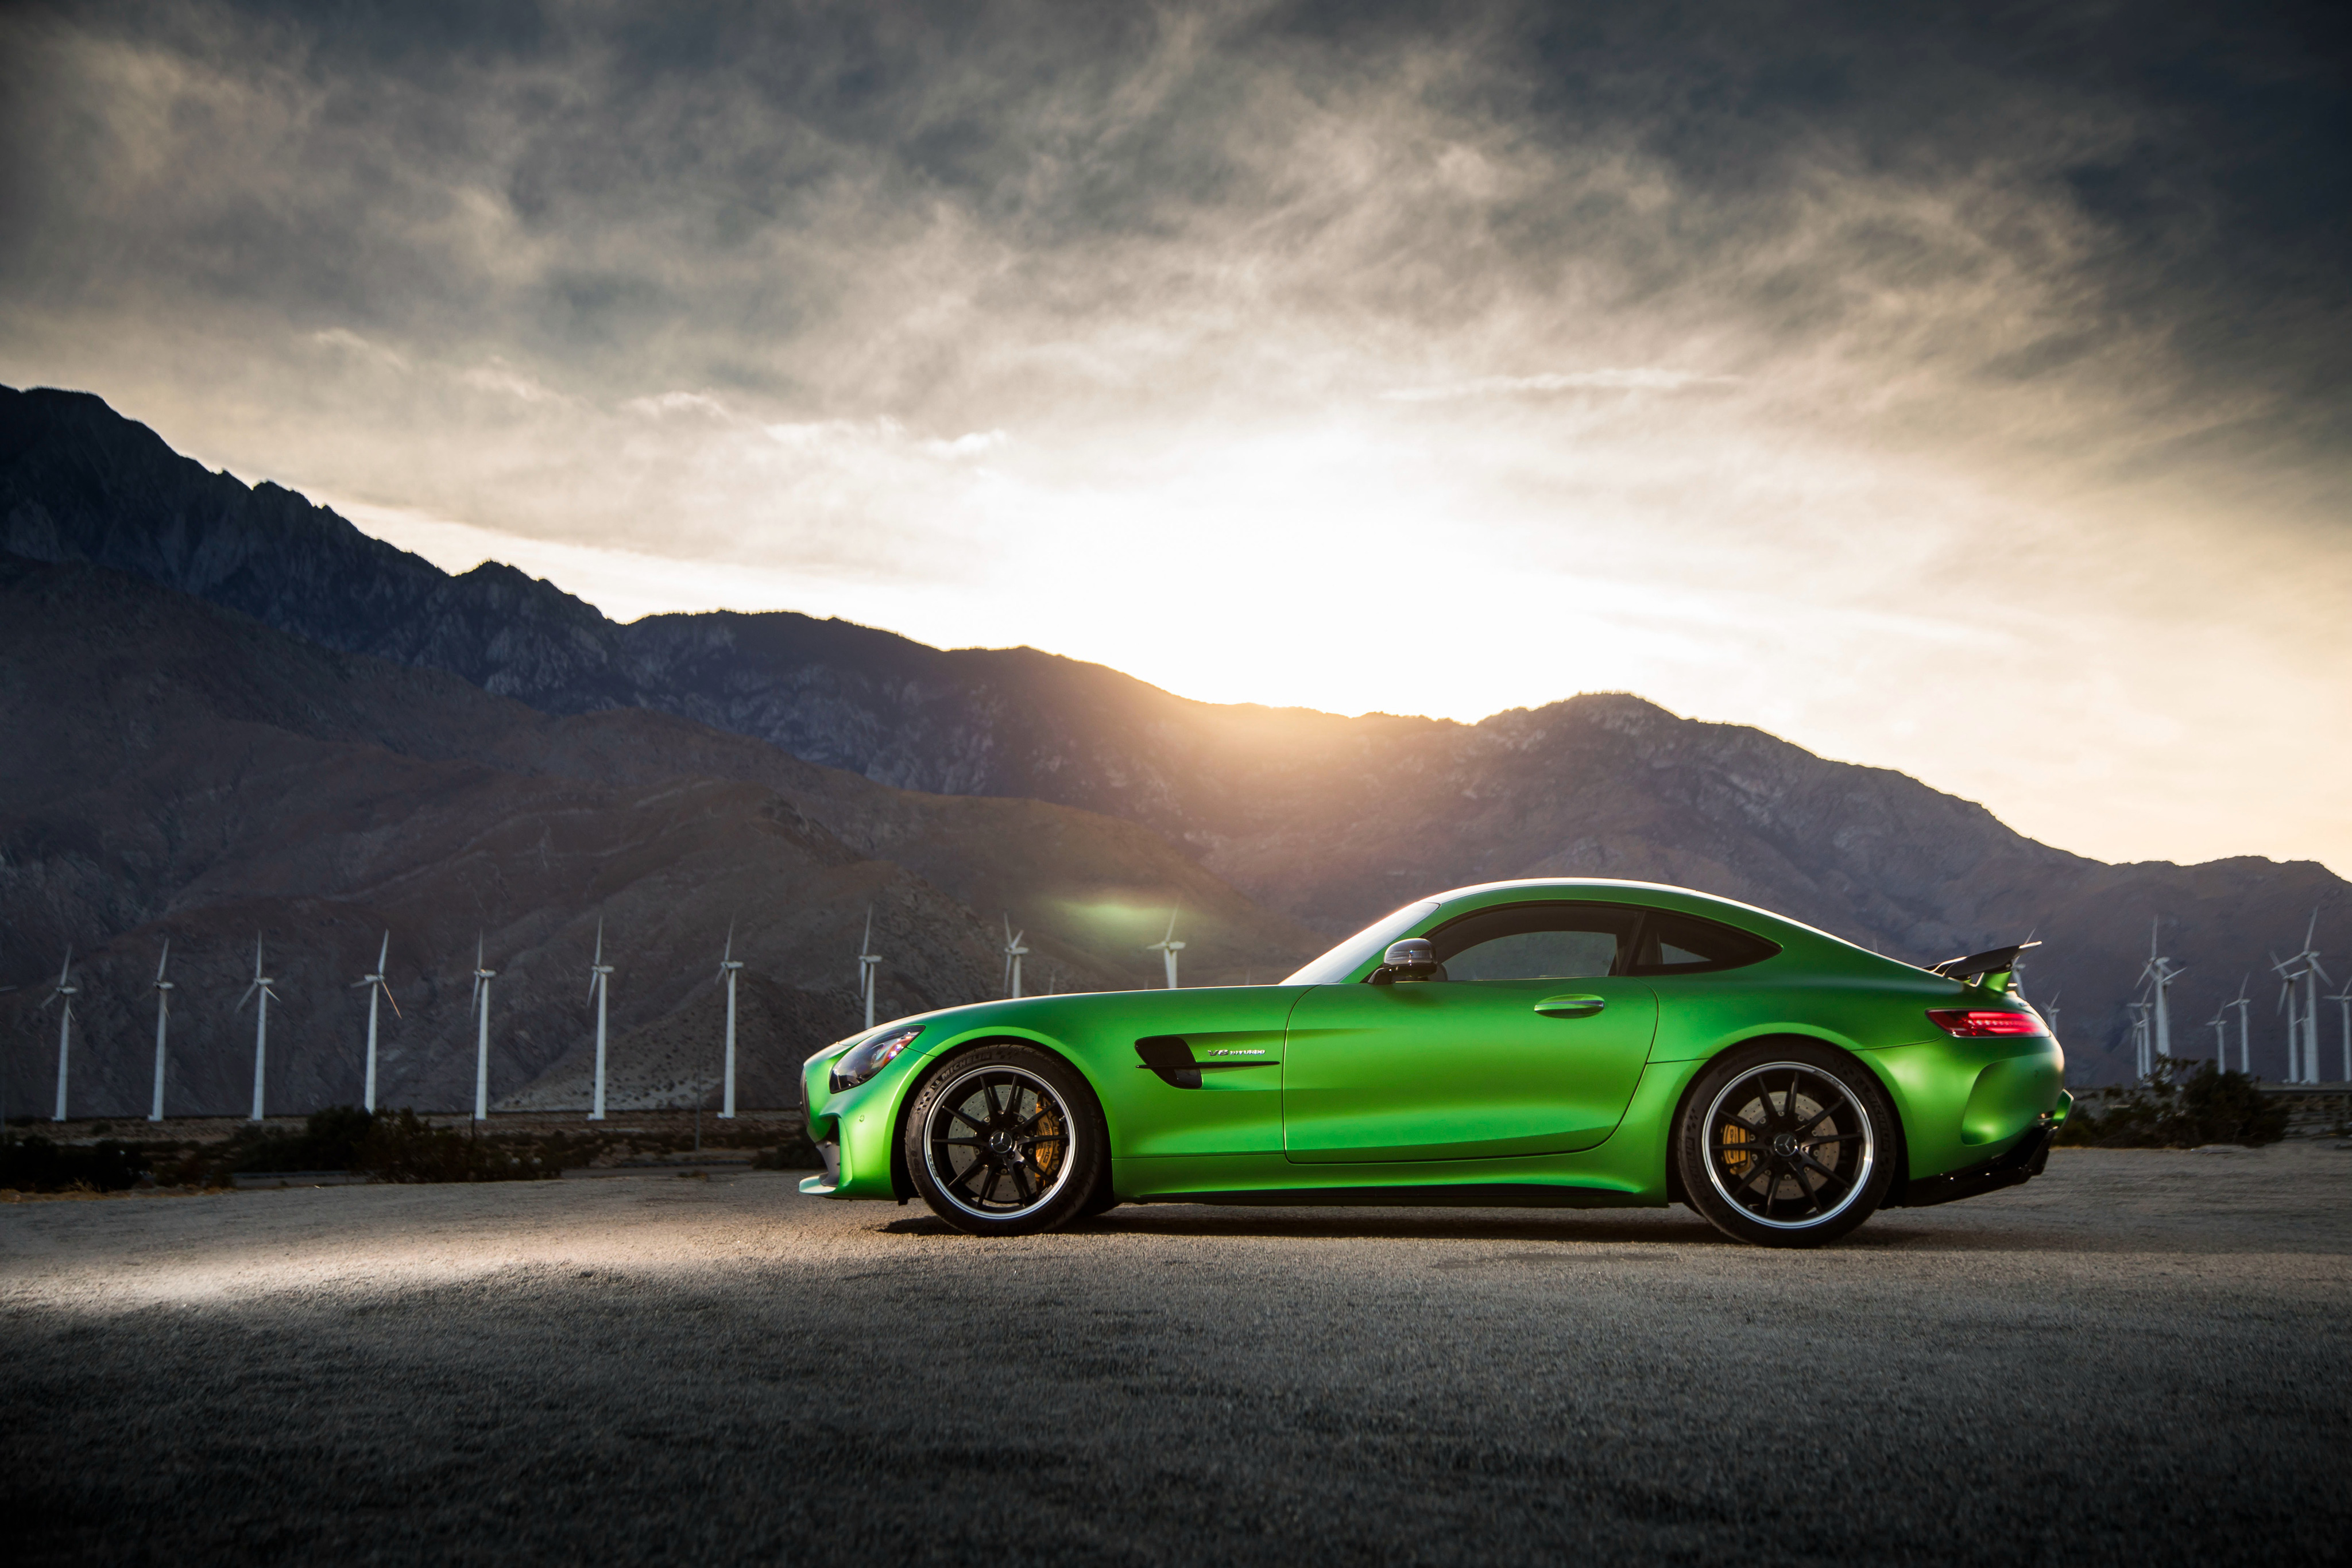 2880x1800 Mercedes Amg Gt R Side View Macbook Pro Retina